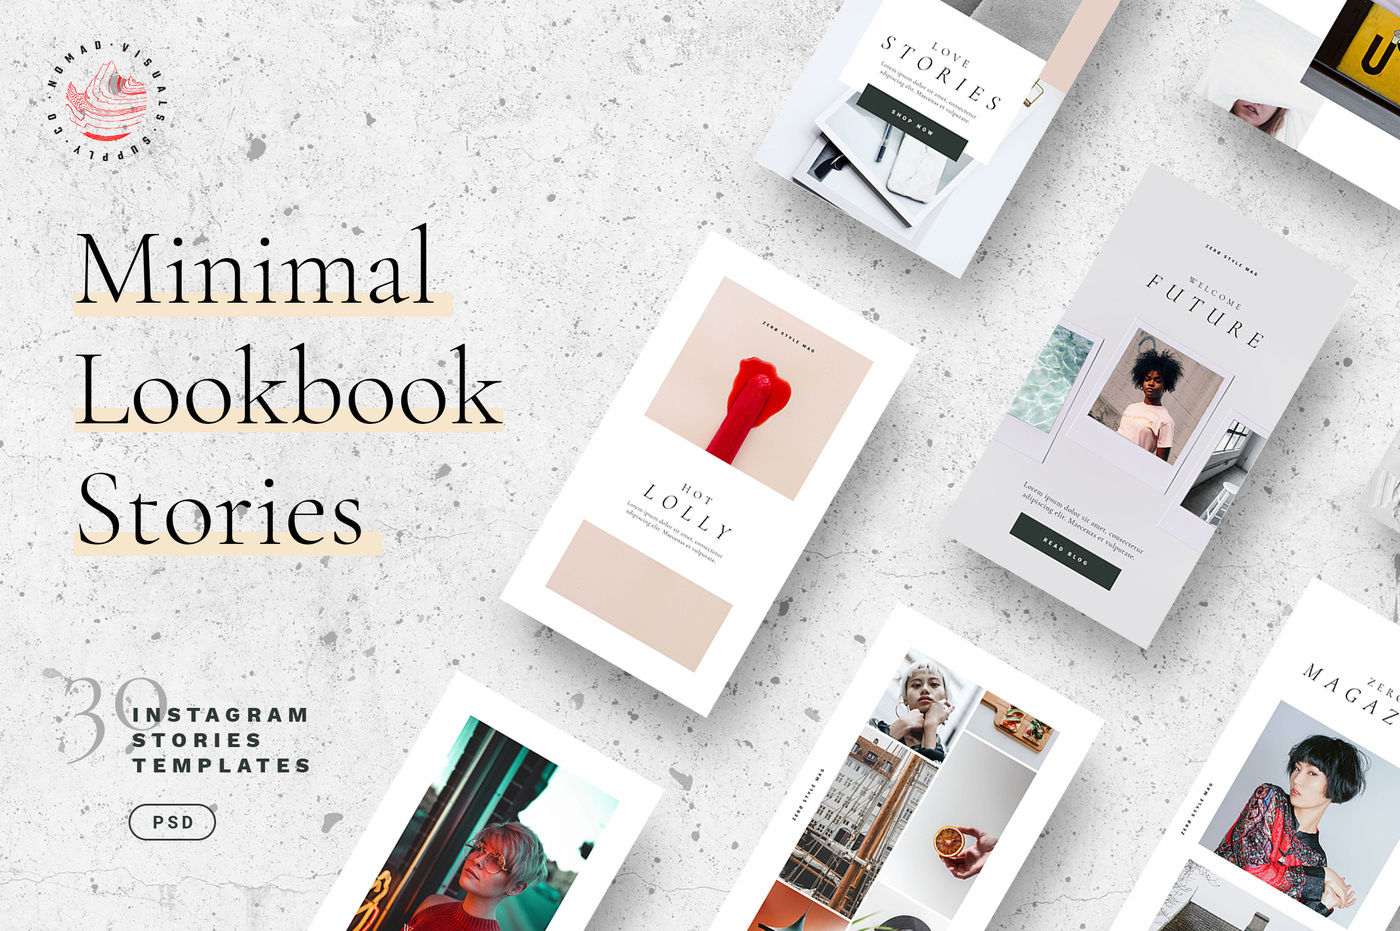 Minimal Lookbook Instagram Stories Templates By Nomad Visuals